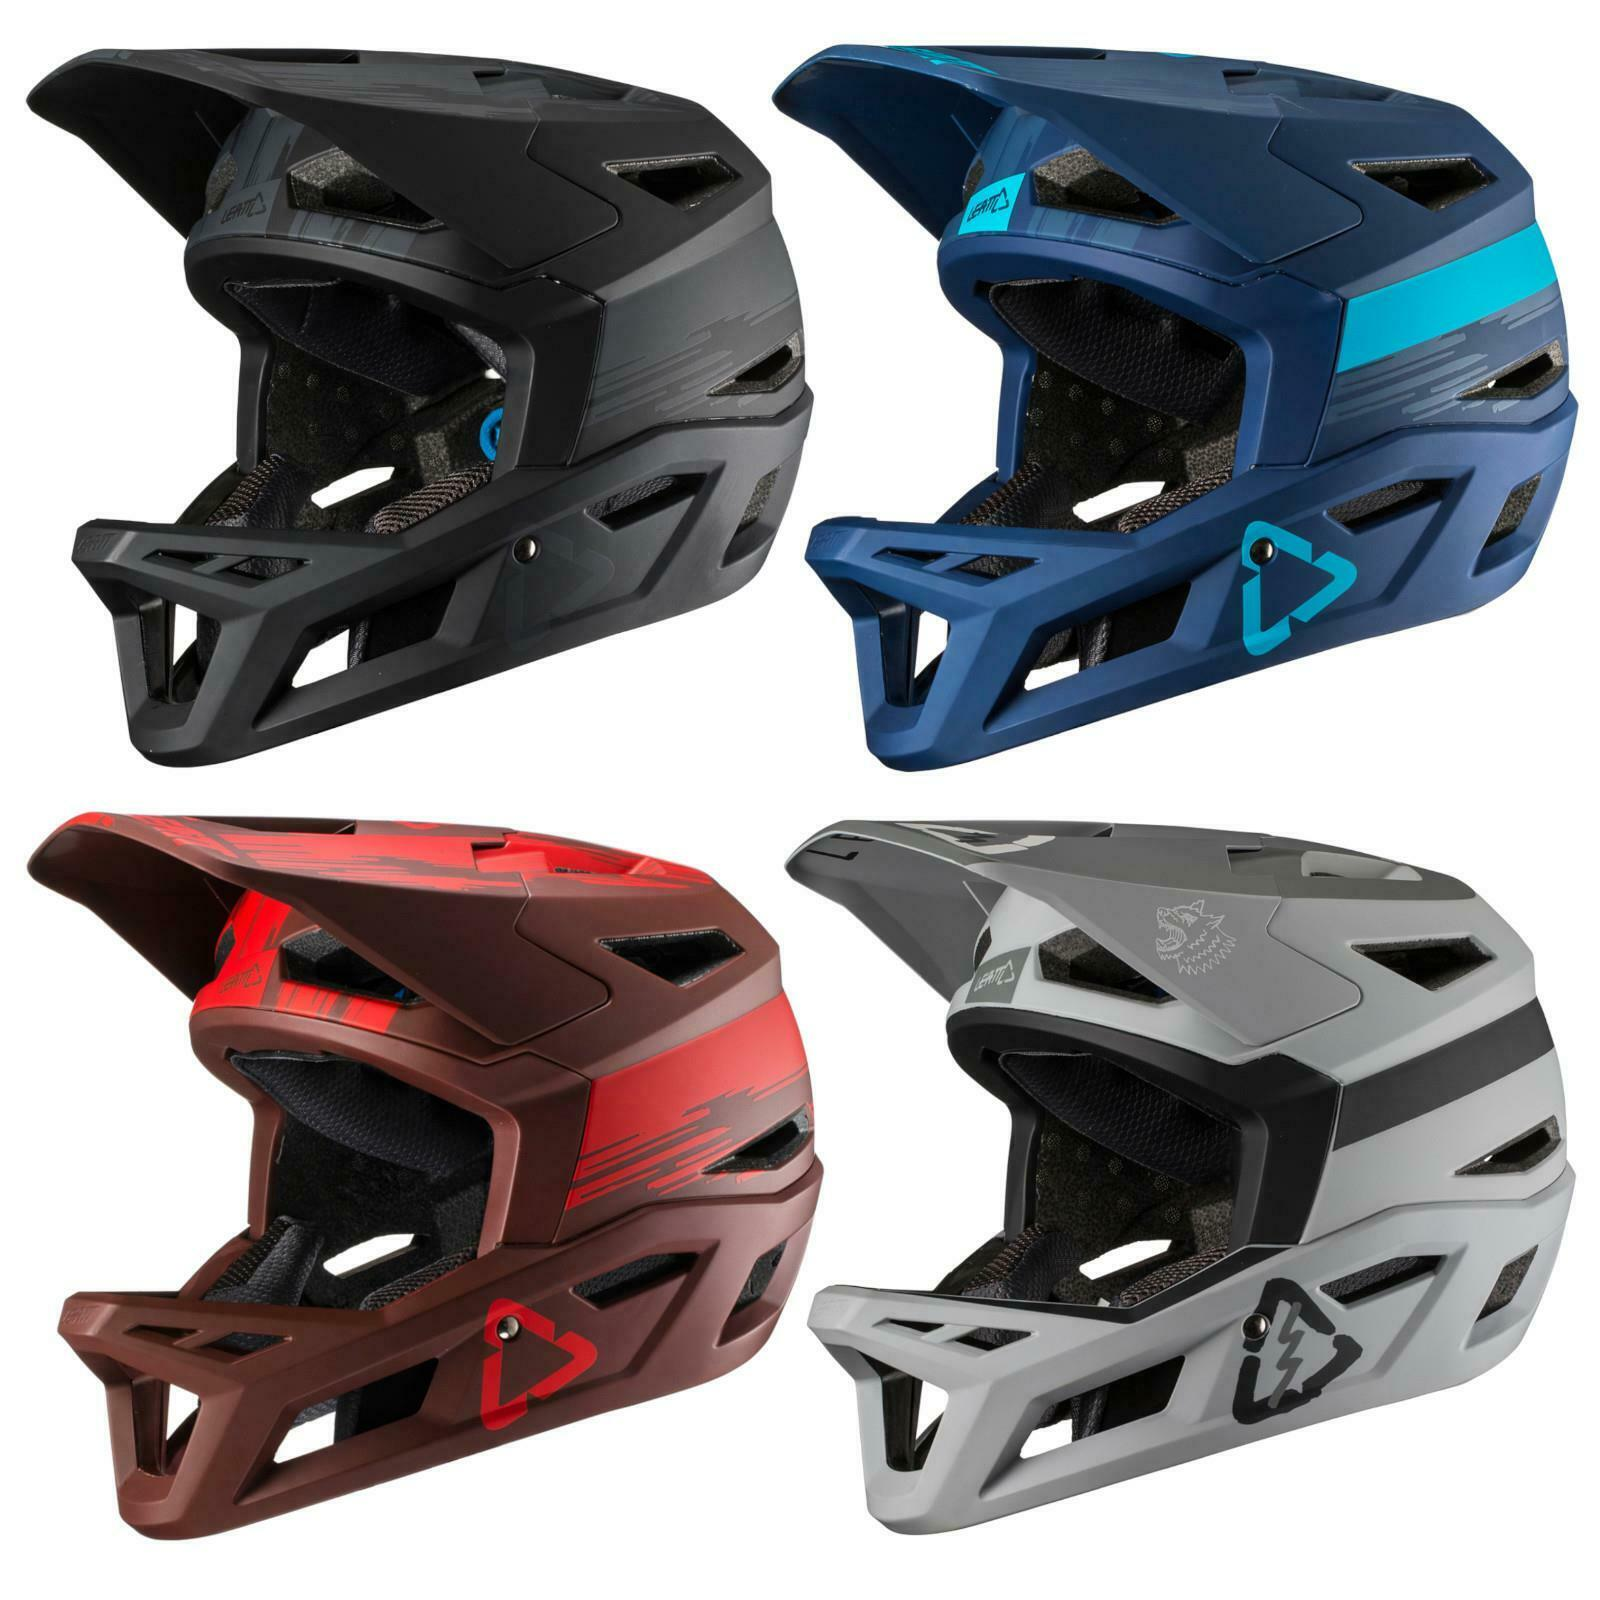 Leatt DBX 4.0 bicicleta casco downhill DH freeride FR MTB, el mountain bike Fidlock